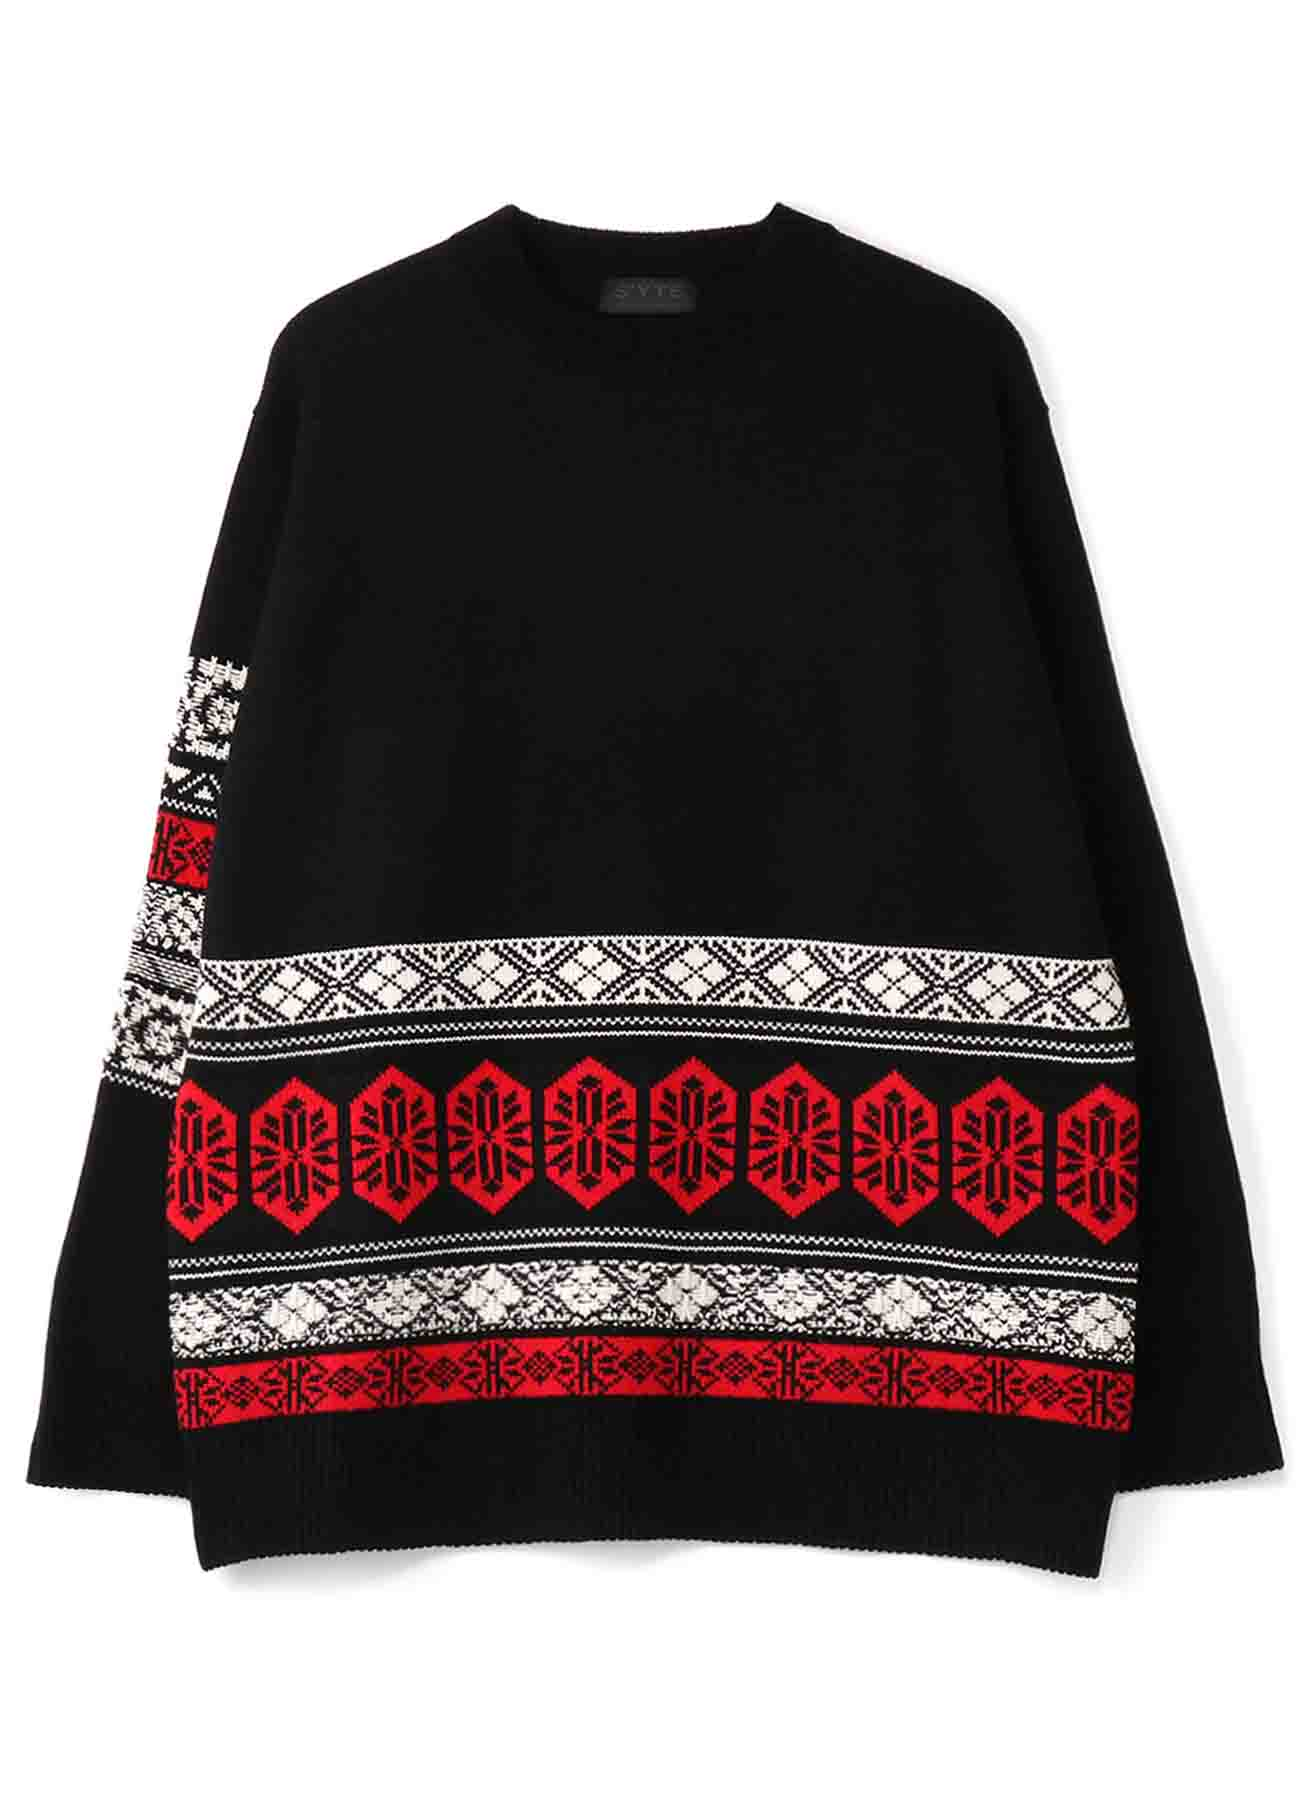 5G Bulky Wool Nordic Crew Neck Pullover